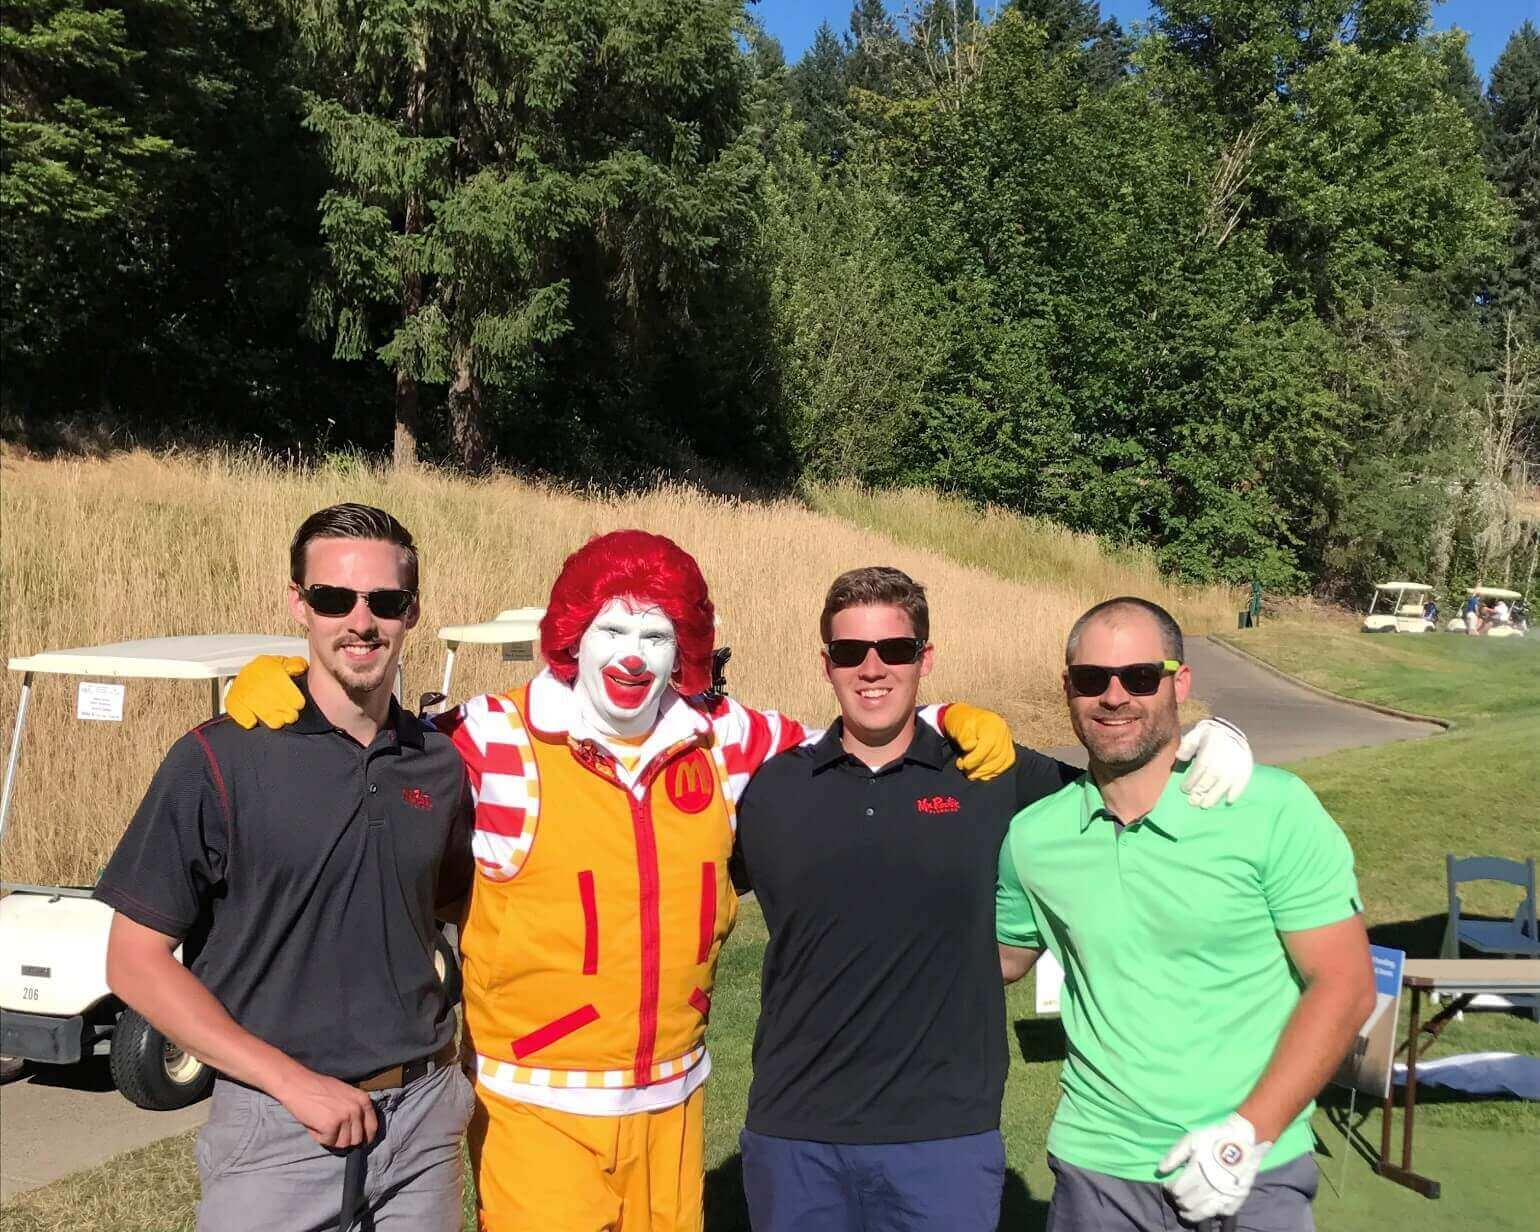 Mr. Rooter Plumbing employees with Ronald McDonald